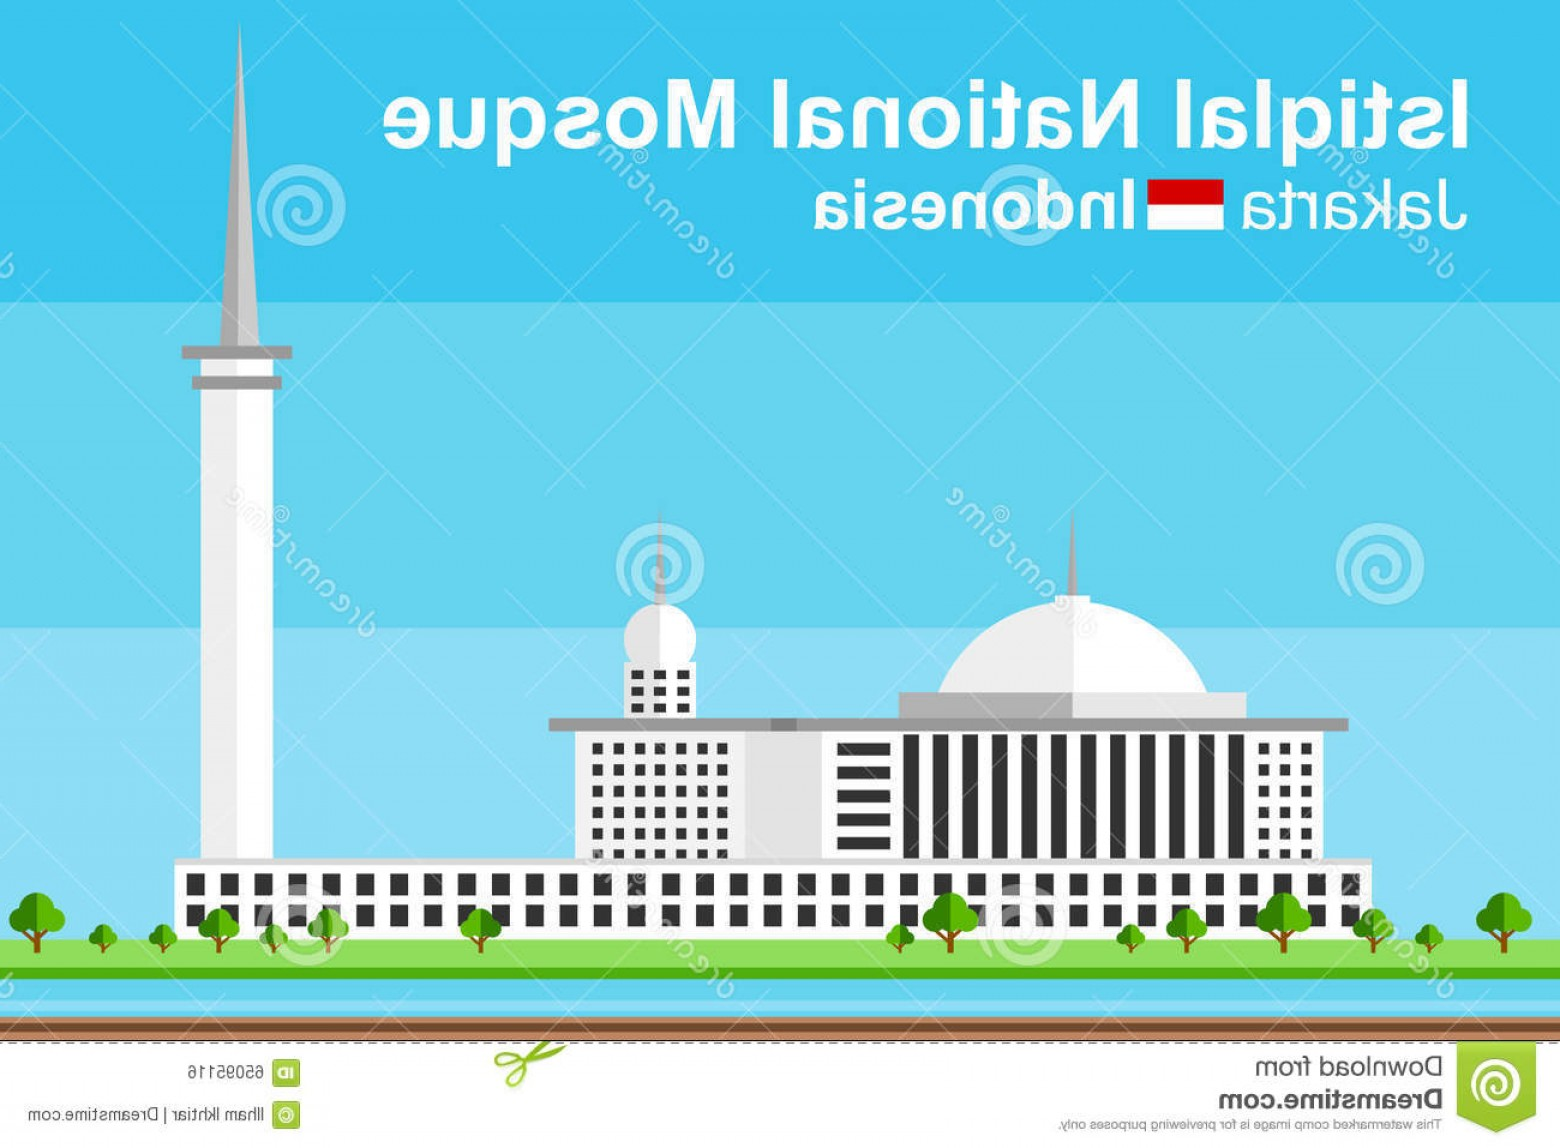 Mosque Vector Map: Stock Illustration Istiqlal Mosque Jakarta Simplified Flat Styled Vector Indonesia As Viewed Aside Image